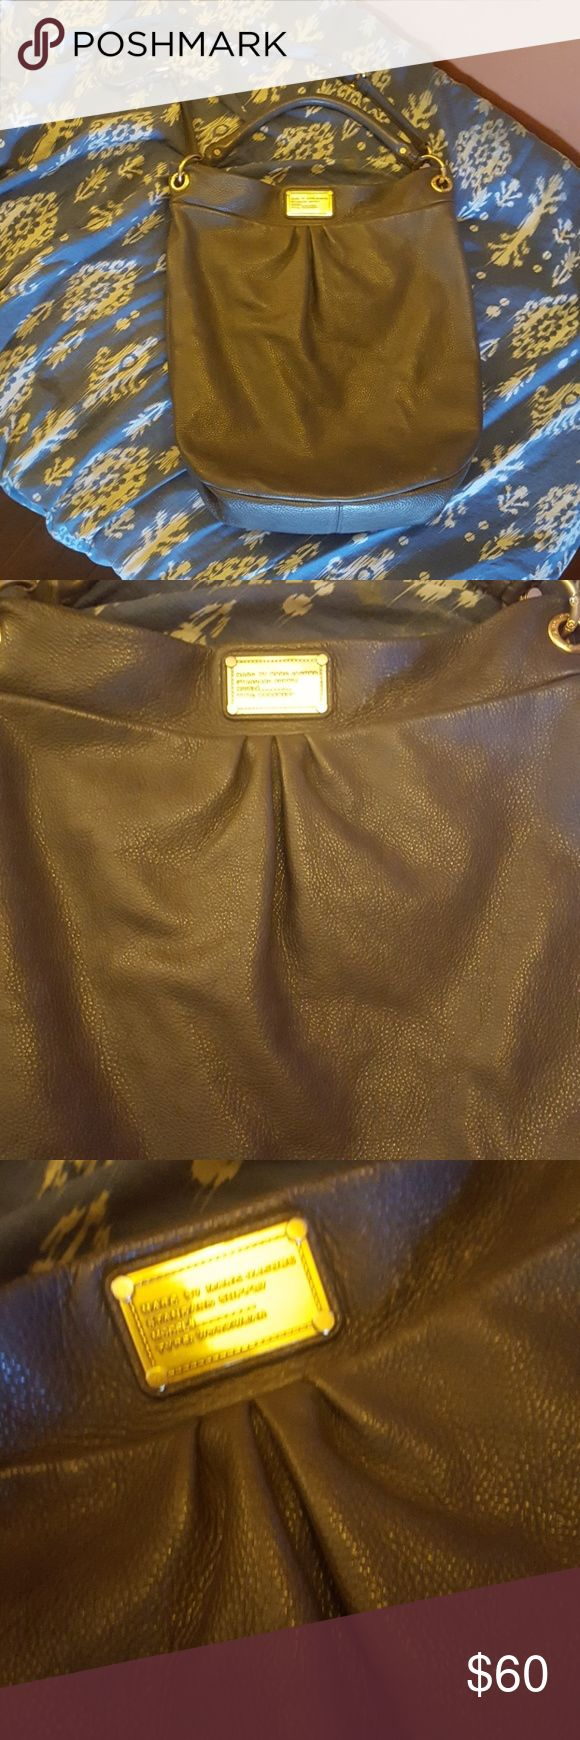 """Marc By Marc Jacobs Gray Q Hillier Hobo Classic Q Hillier oversized hobo bag by Marc Jacobs. Really cool gray color with gold hardware and crossbody strap. Super soft leather. Measures 14.5"""" across, and 16"""" high. NOTE: This bag is in pre loved condition, but still has TONS of life left. Has no stains, but the leather is discolored in certain spots, and has a TINY crack/slit near the top. My home and I are smoke free. BUT, I USED to be a smoker. To me the bag has no smoke odor, and it has…"""